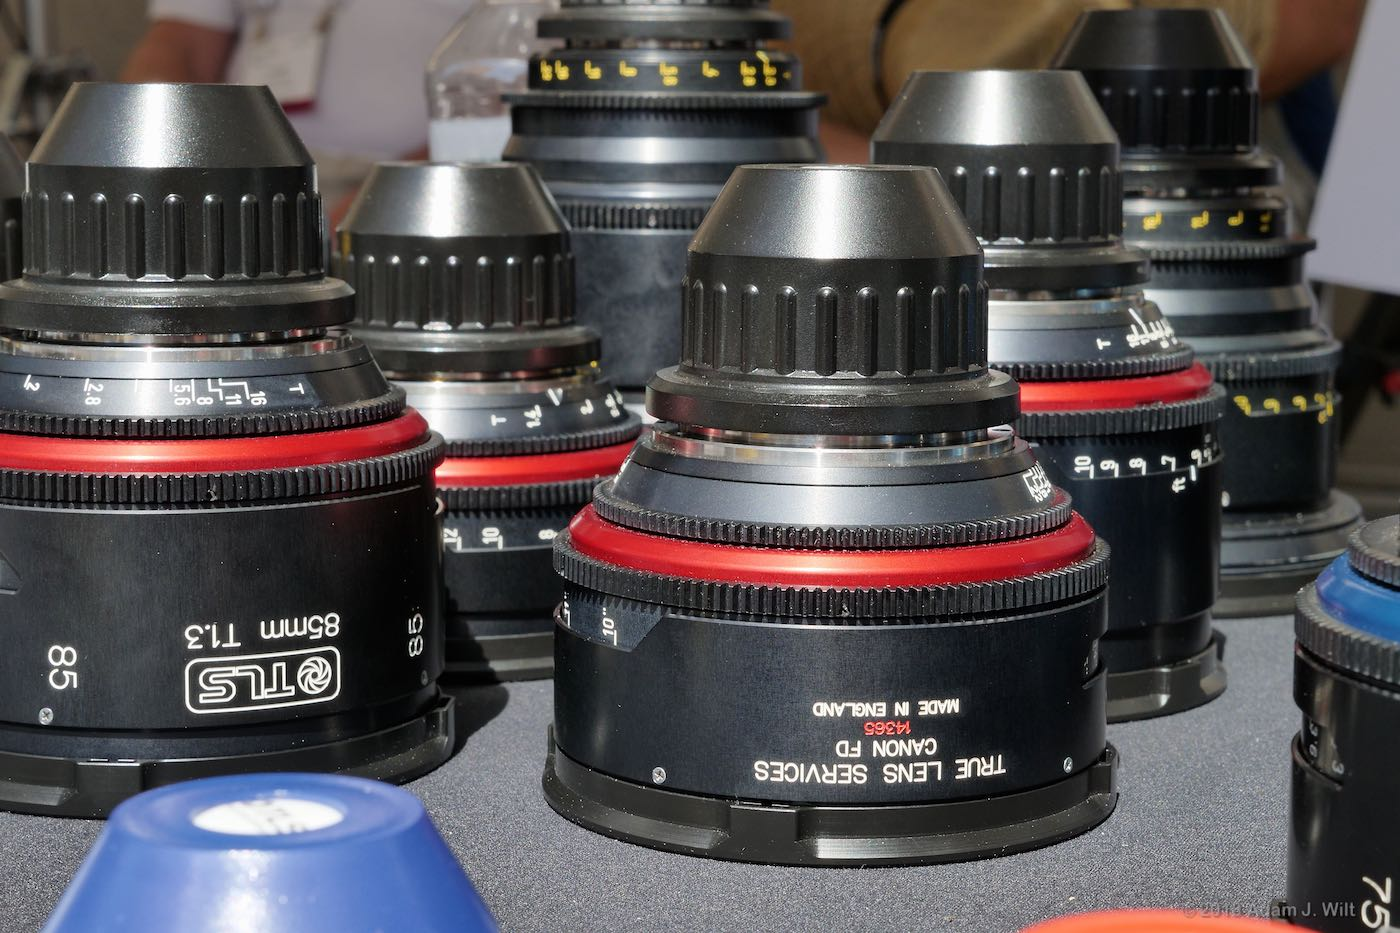 TLS rehoused lenses